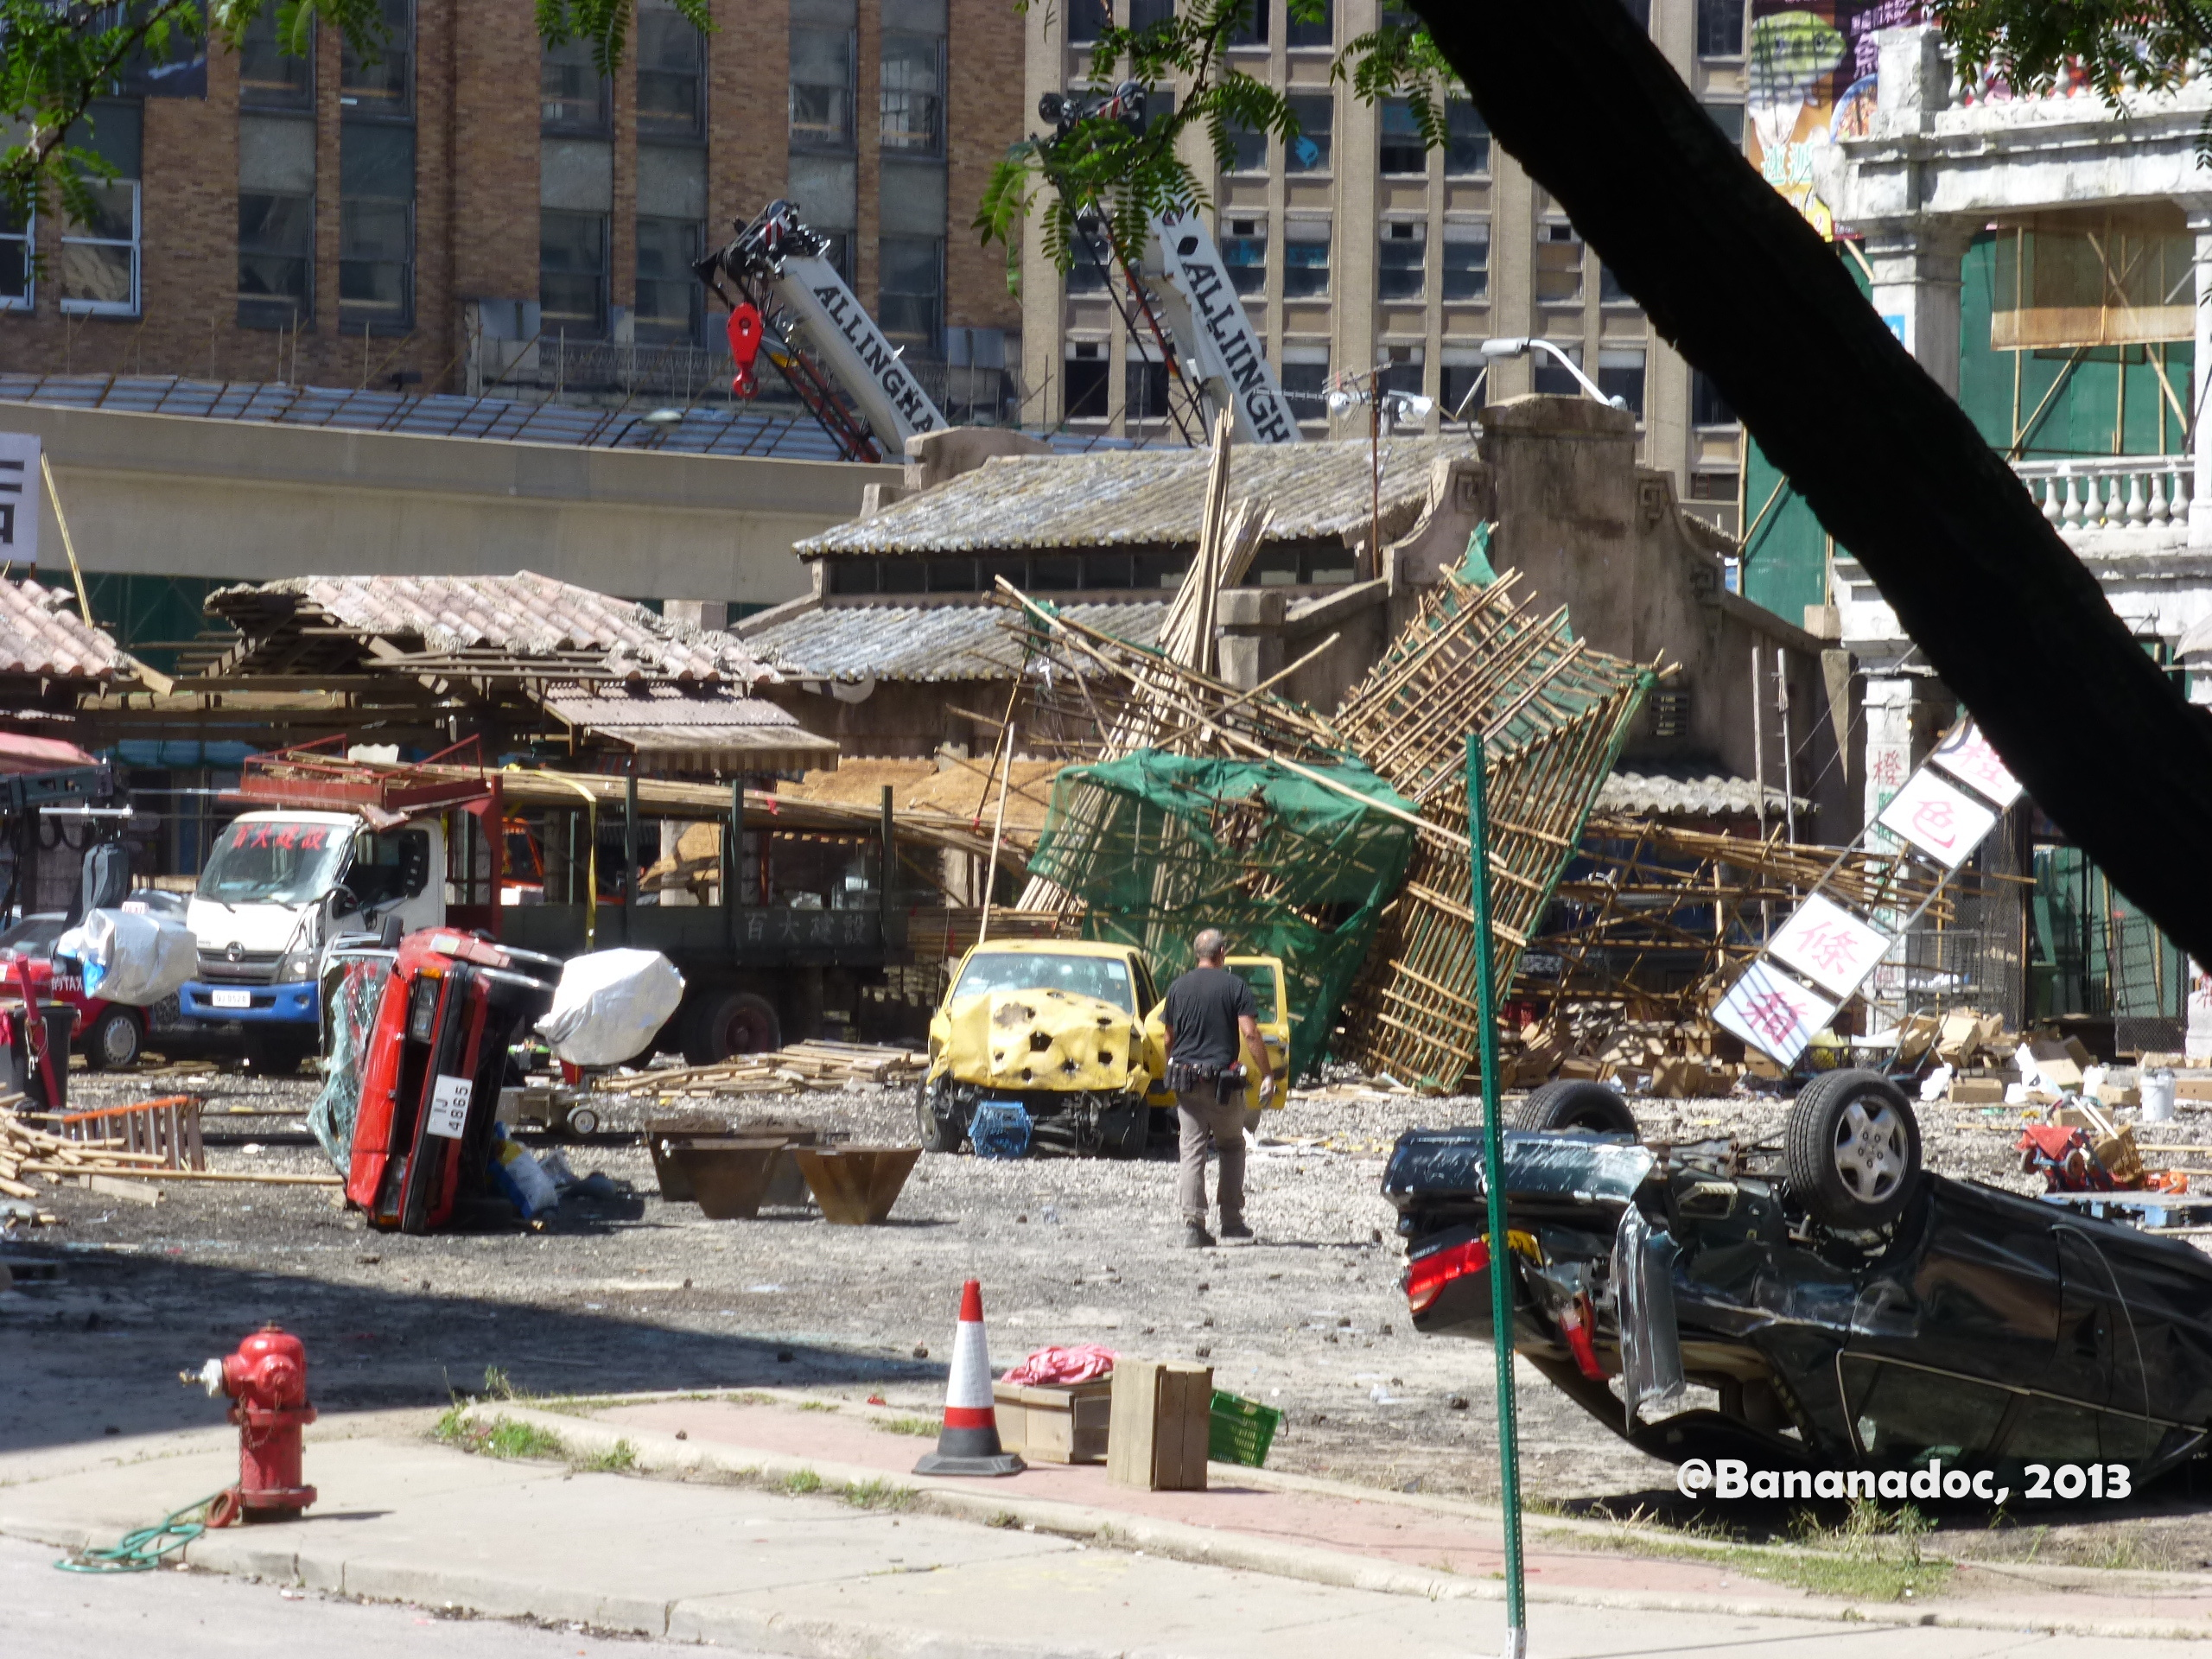 huge lawn chair twin sleeper pictures from the detroit set of transformers 4, day 4 | michigan movies and more